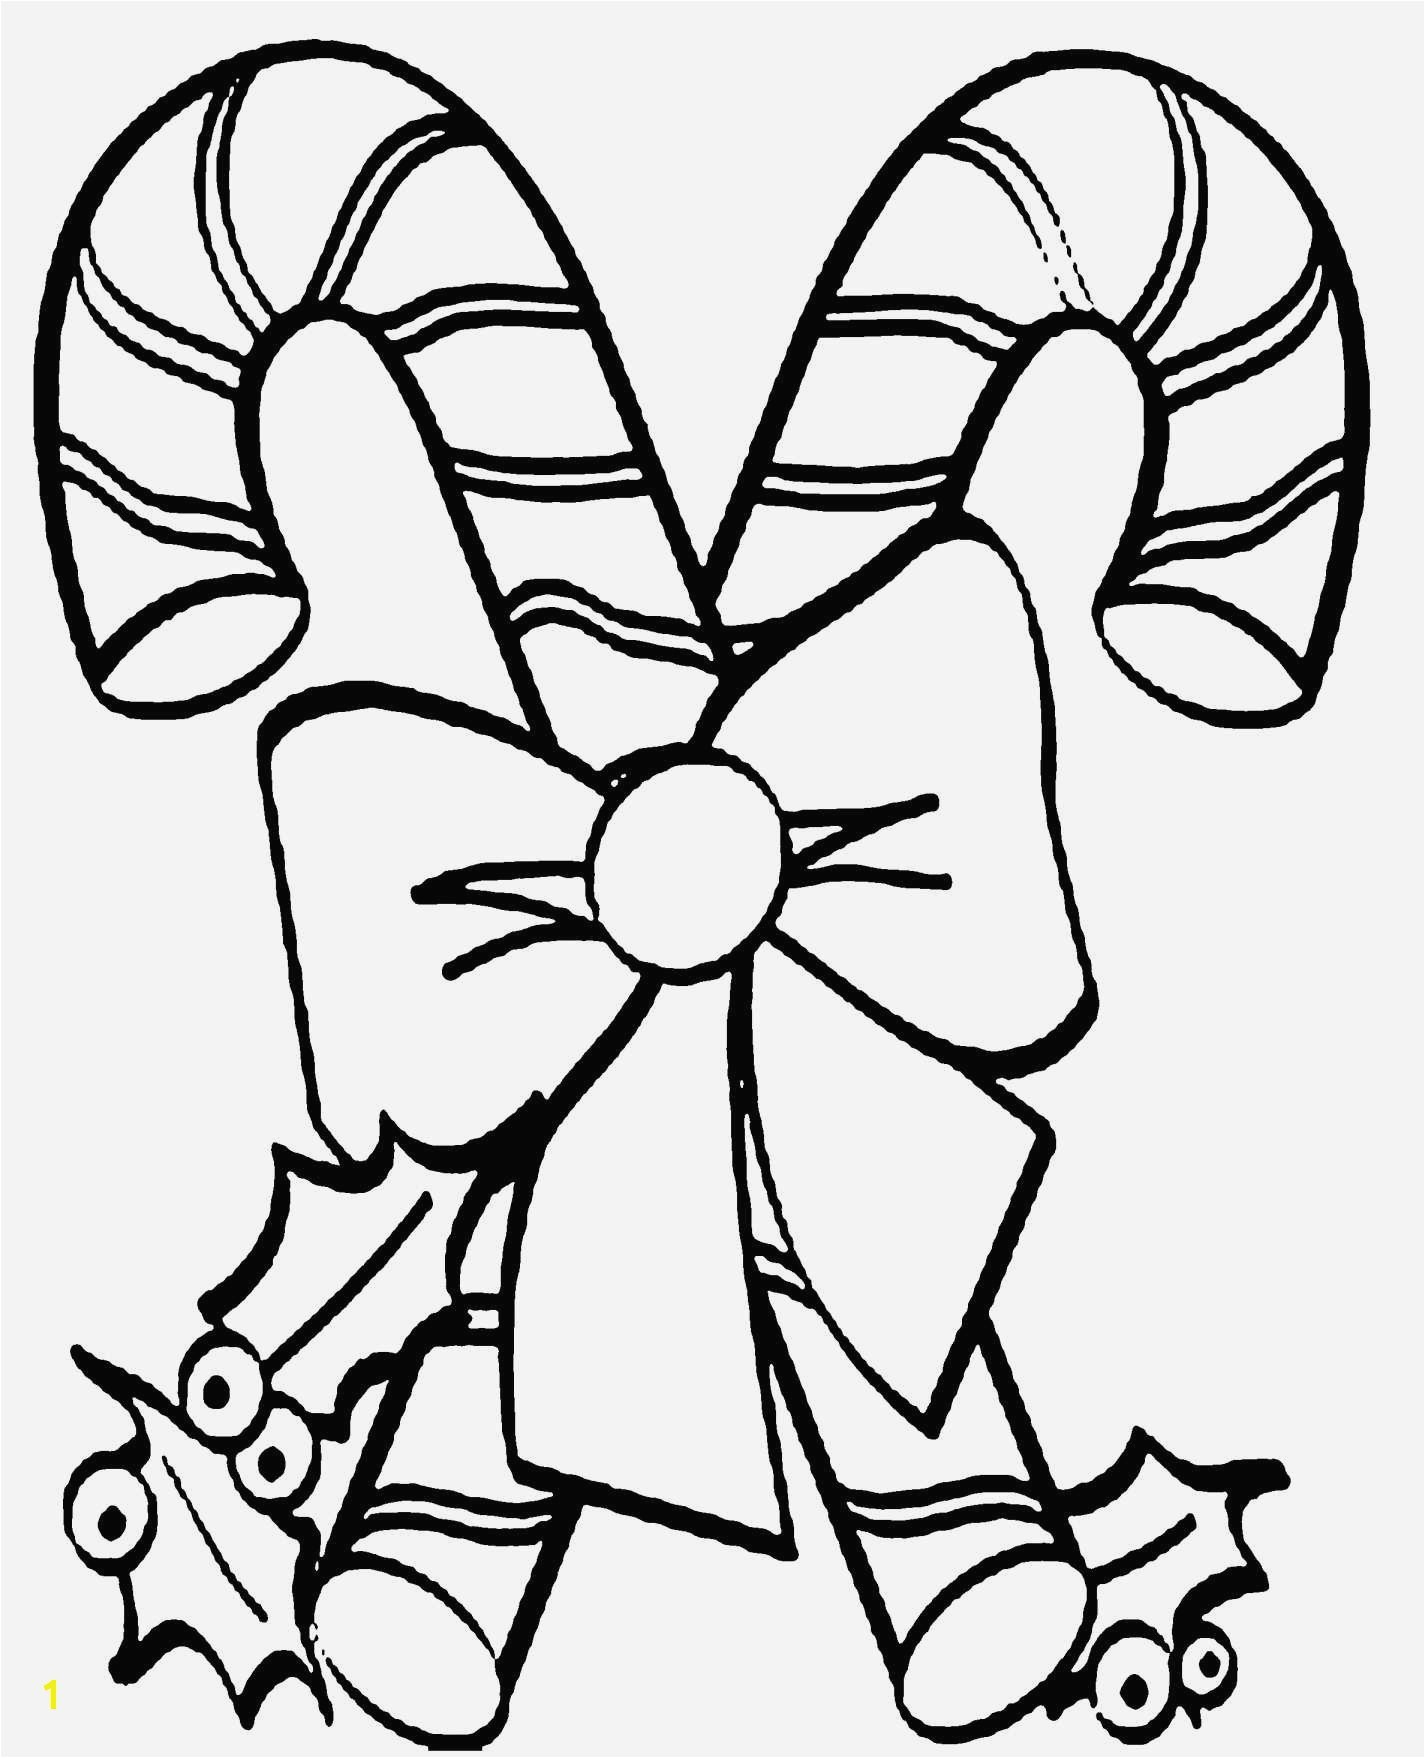 Printable Christmas Coloring Pages Candy Canes Candy Cane Coloring Pages New Hello Kitty Cartoon Coloring Page